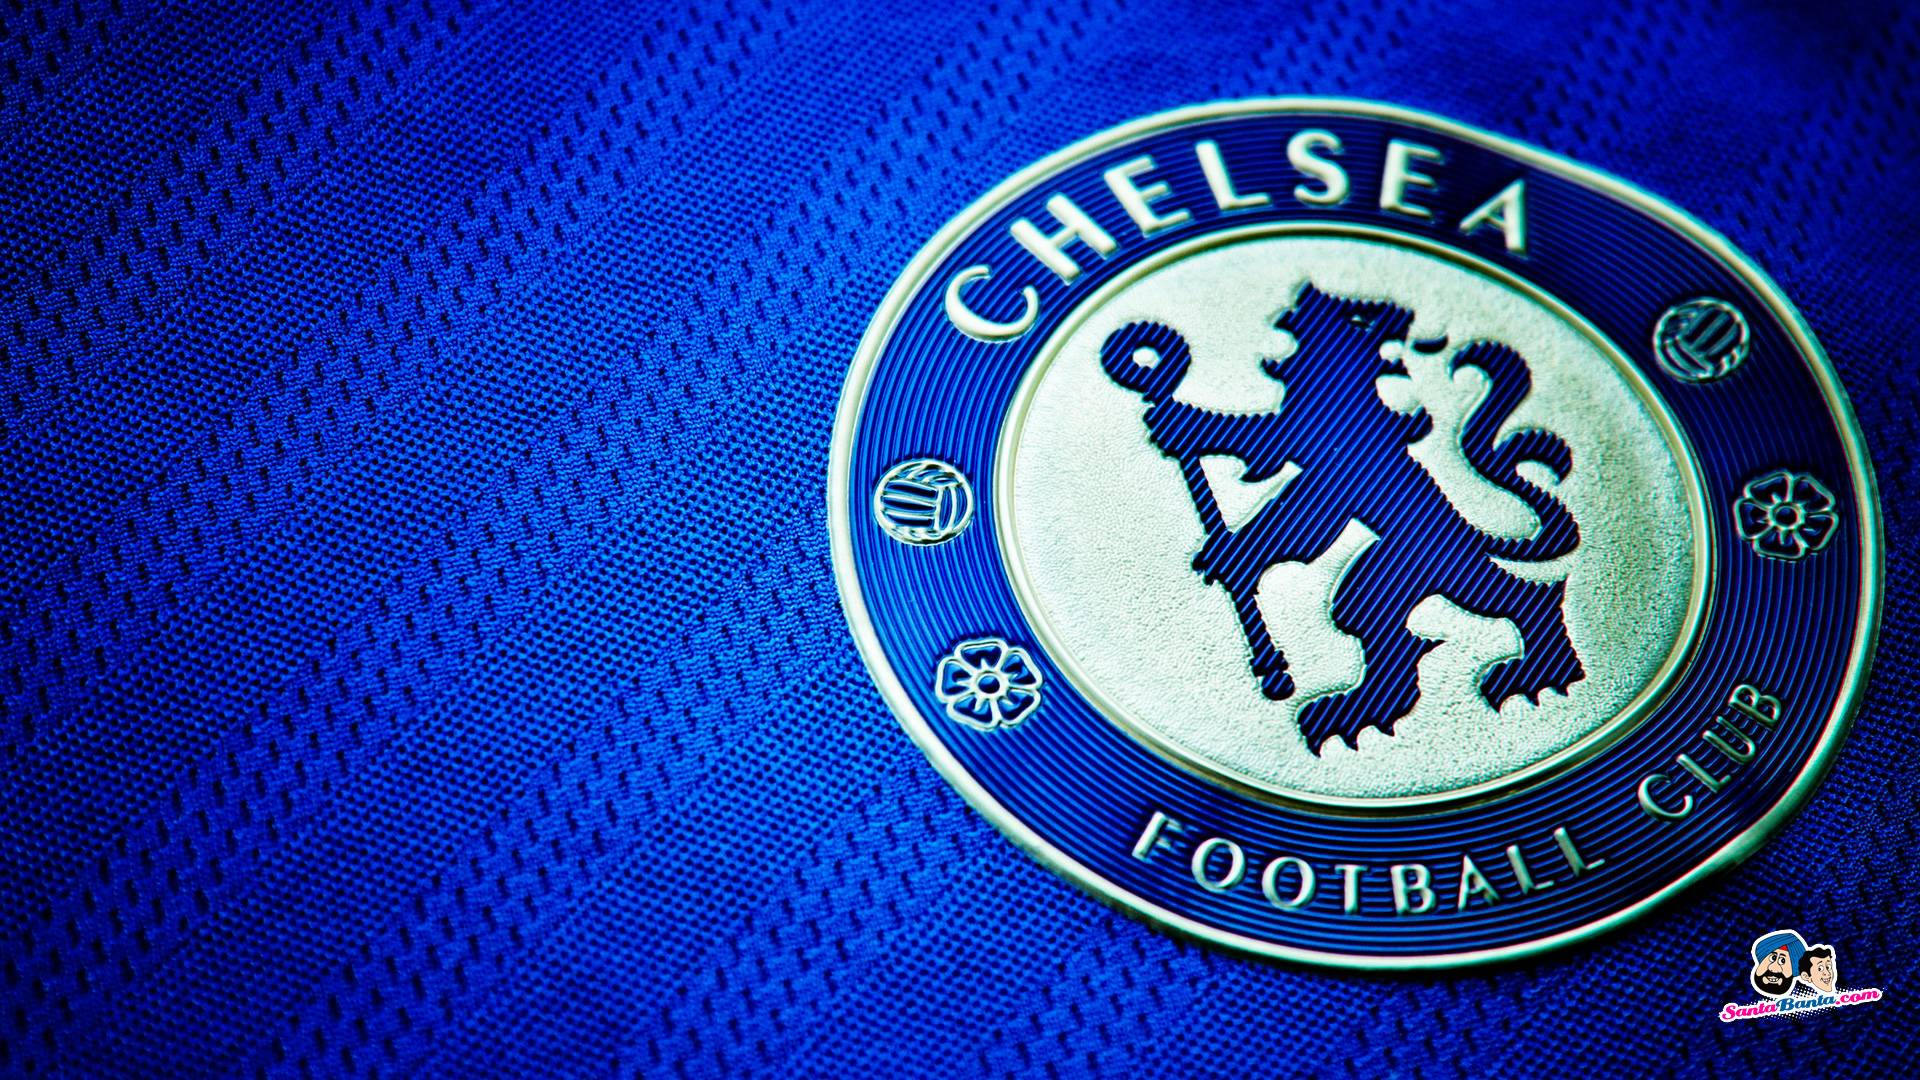 chelsea fc wallpapers for pc - photo #6